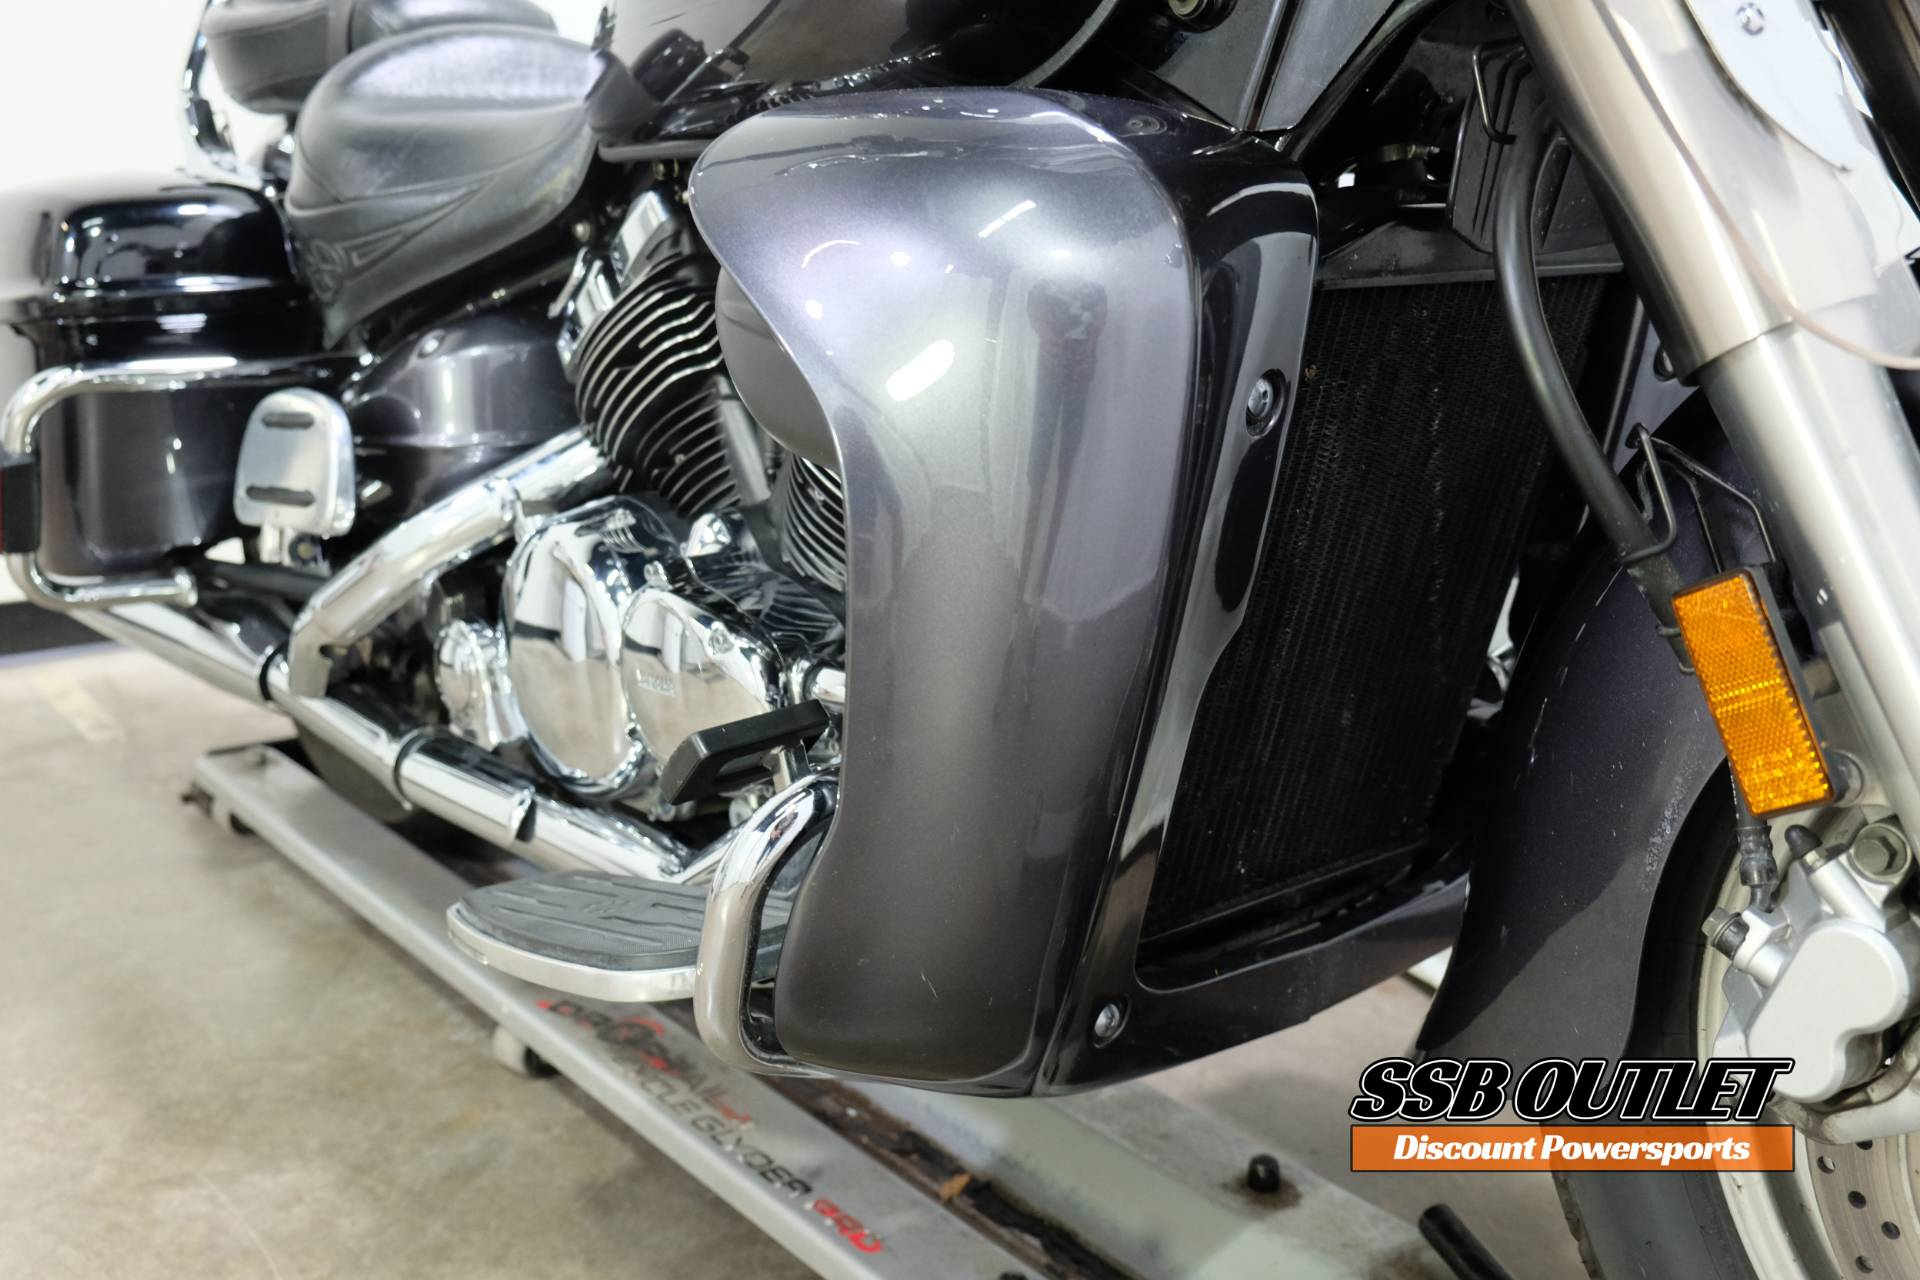 2005 Yamaha Royal Star® Tour Deluxe in Eden Prairie, Minnesota - Photo 17